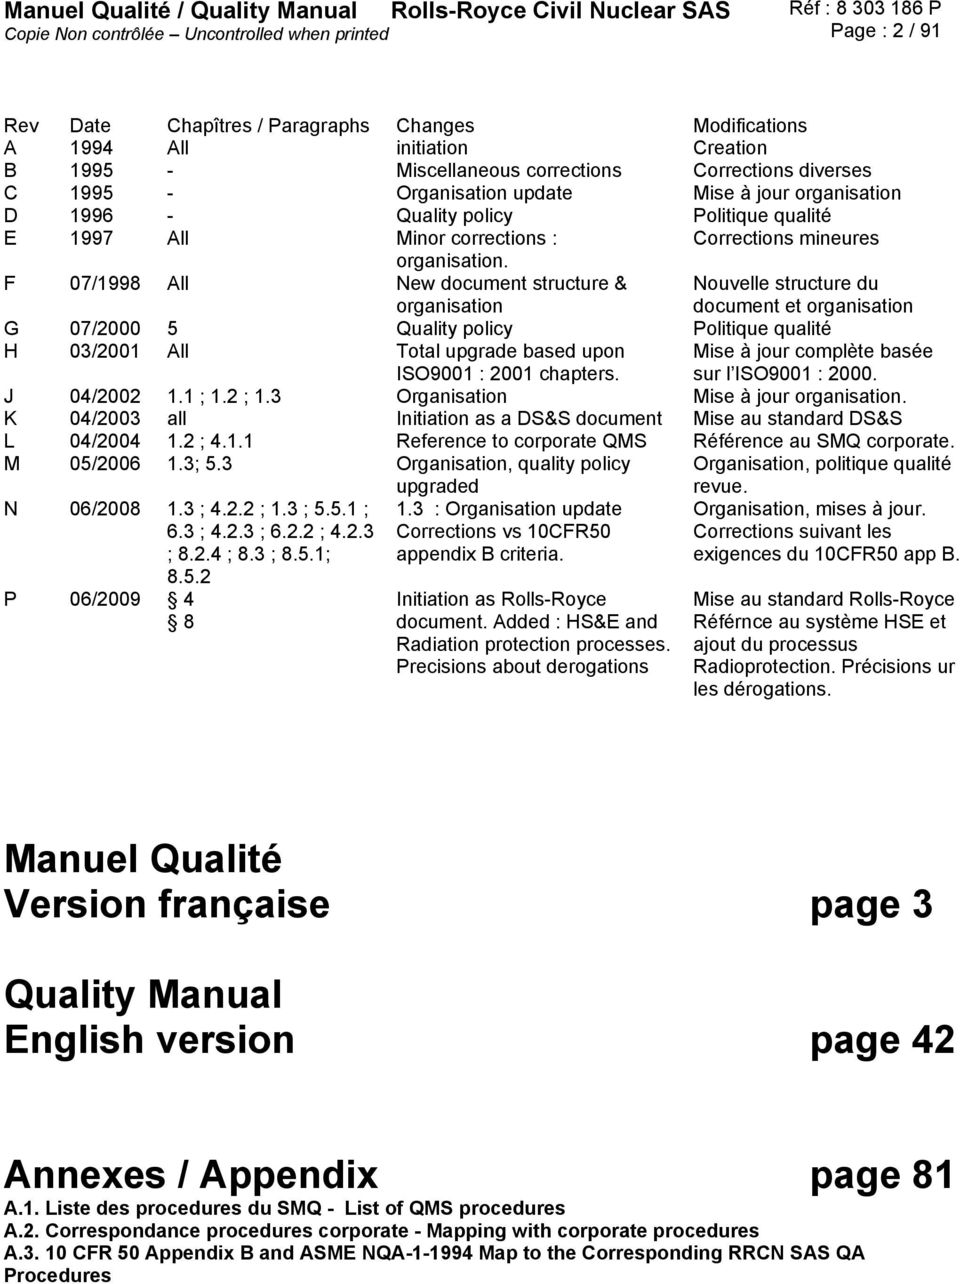 F 07/1998 All New document structure & organisation Nouvelle structure du document et organisation G 07/2000 5 Quality policy Politique qualité H 03/2001 All Total upgrade based upon ISO9001 : 2001